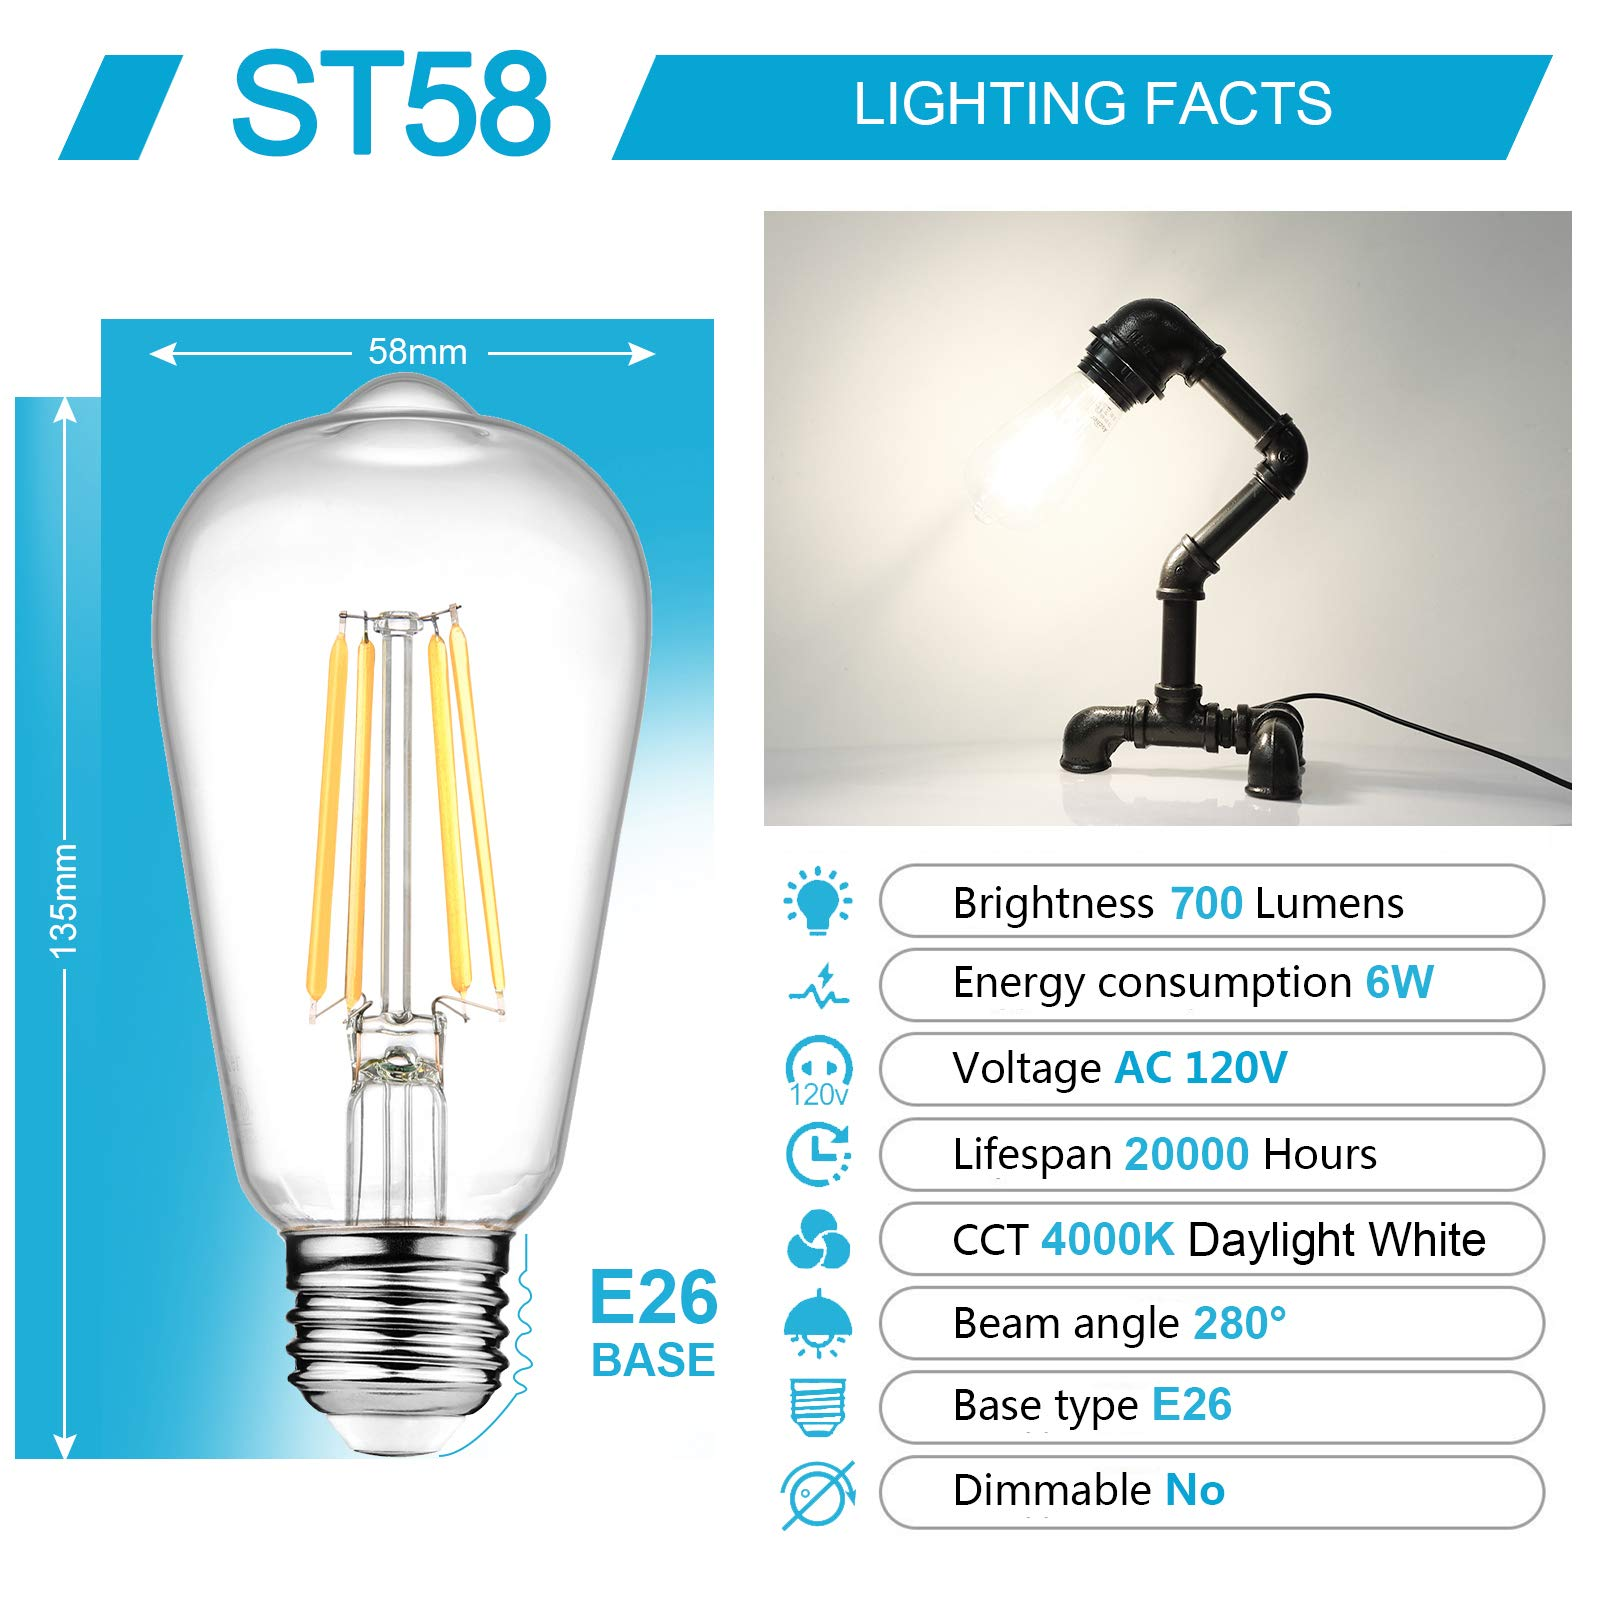 Ascher Vintage LED Edison Bulbs, 6W, Equivalent 60W, High Brightness Daylight White 4000K, ST58 Antique LED Filament Bulbs, E26 Medium Base, Non Dimmable, Clear Glass, Pack of 6 by Ascher (Image #4)